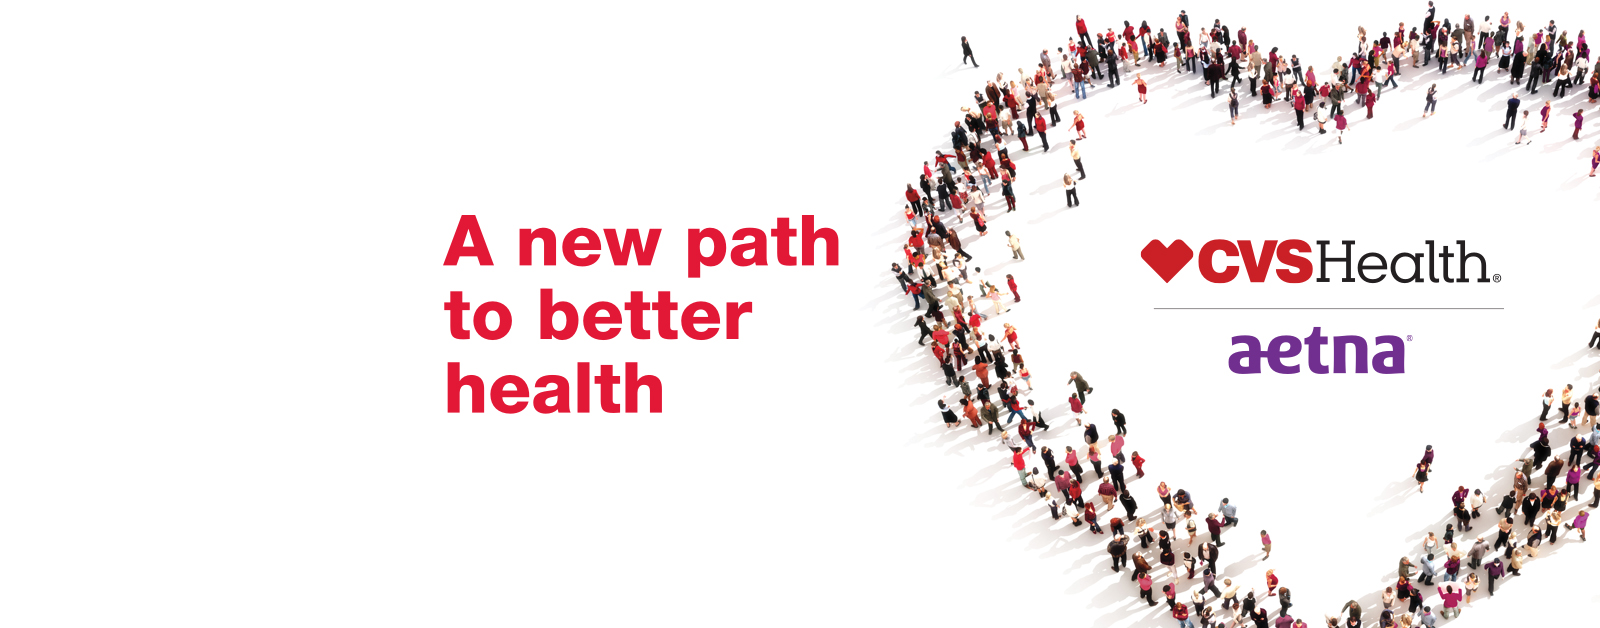 CVS Health Completes Acquisition of Aetna...